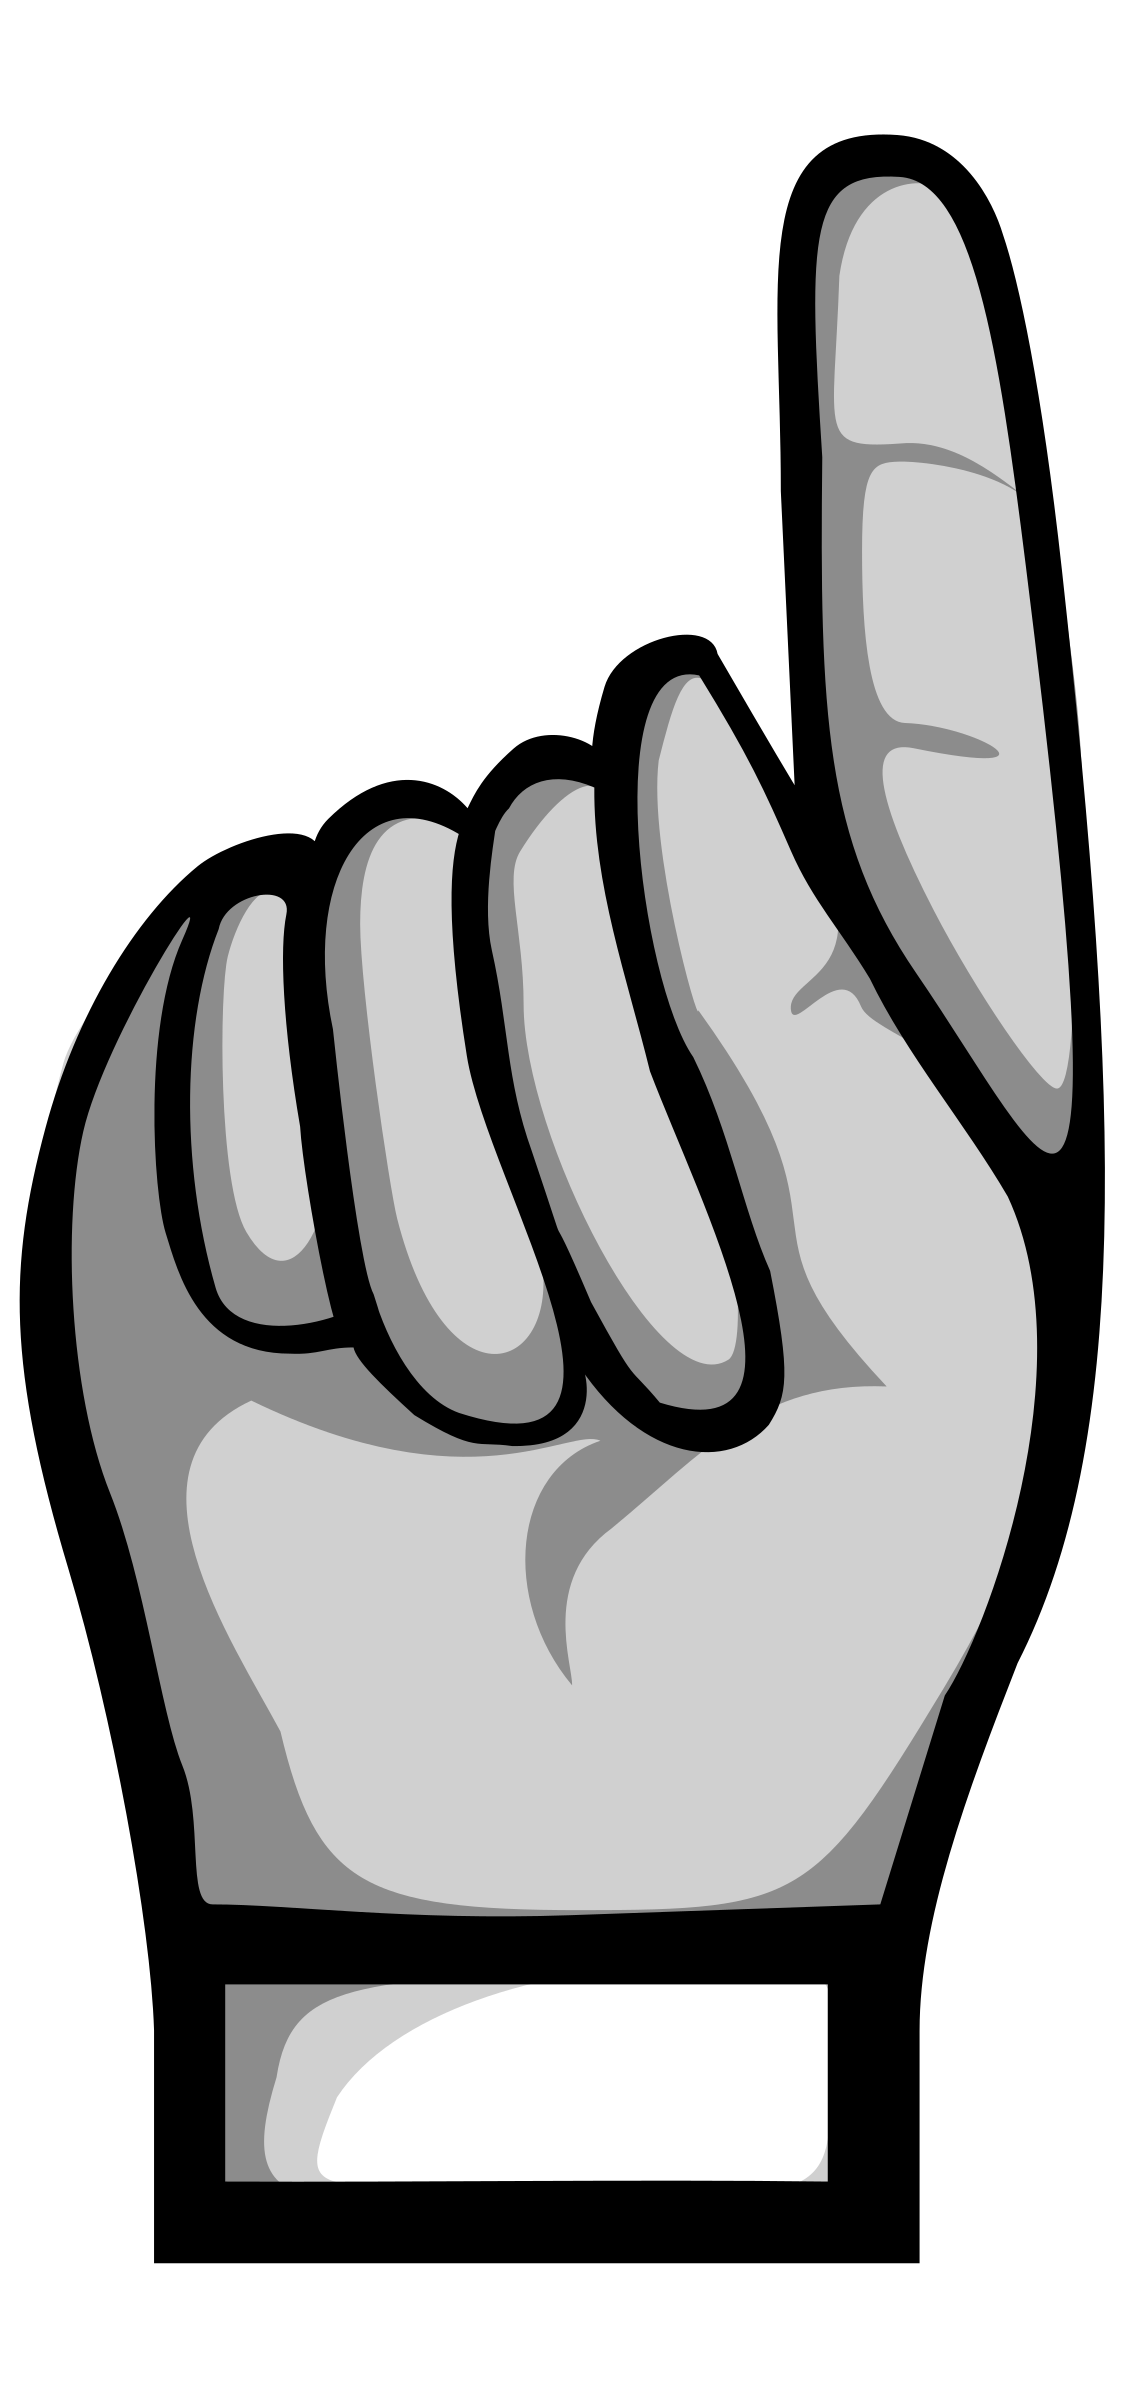 Hand clipart muscular. Hands up black and